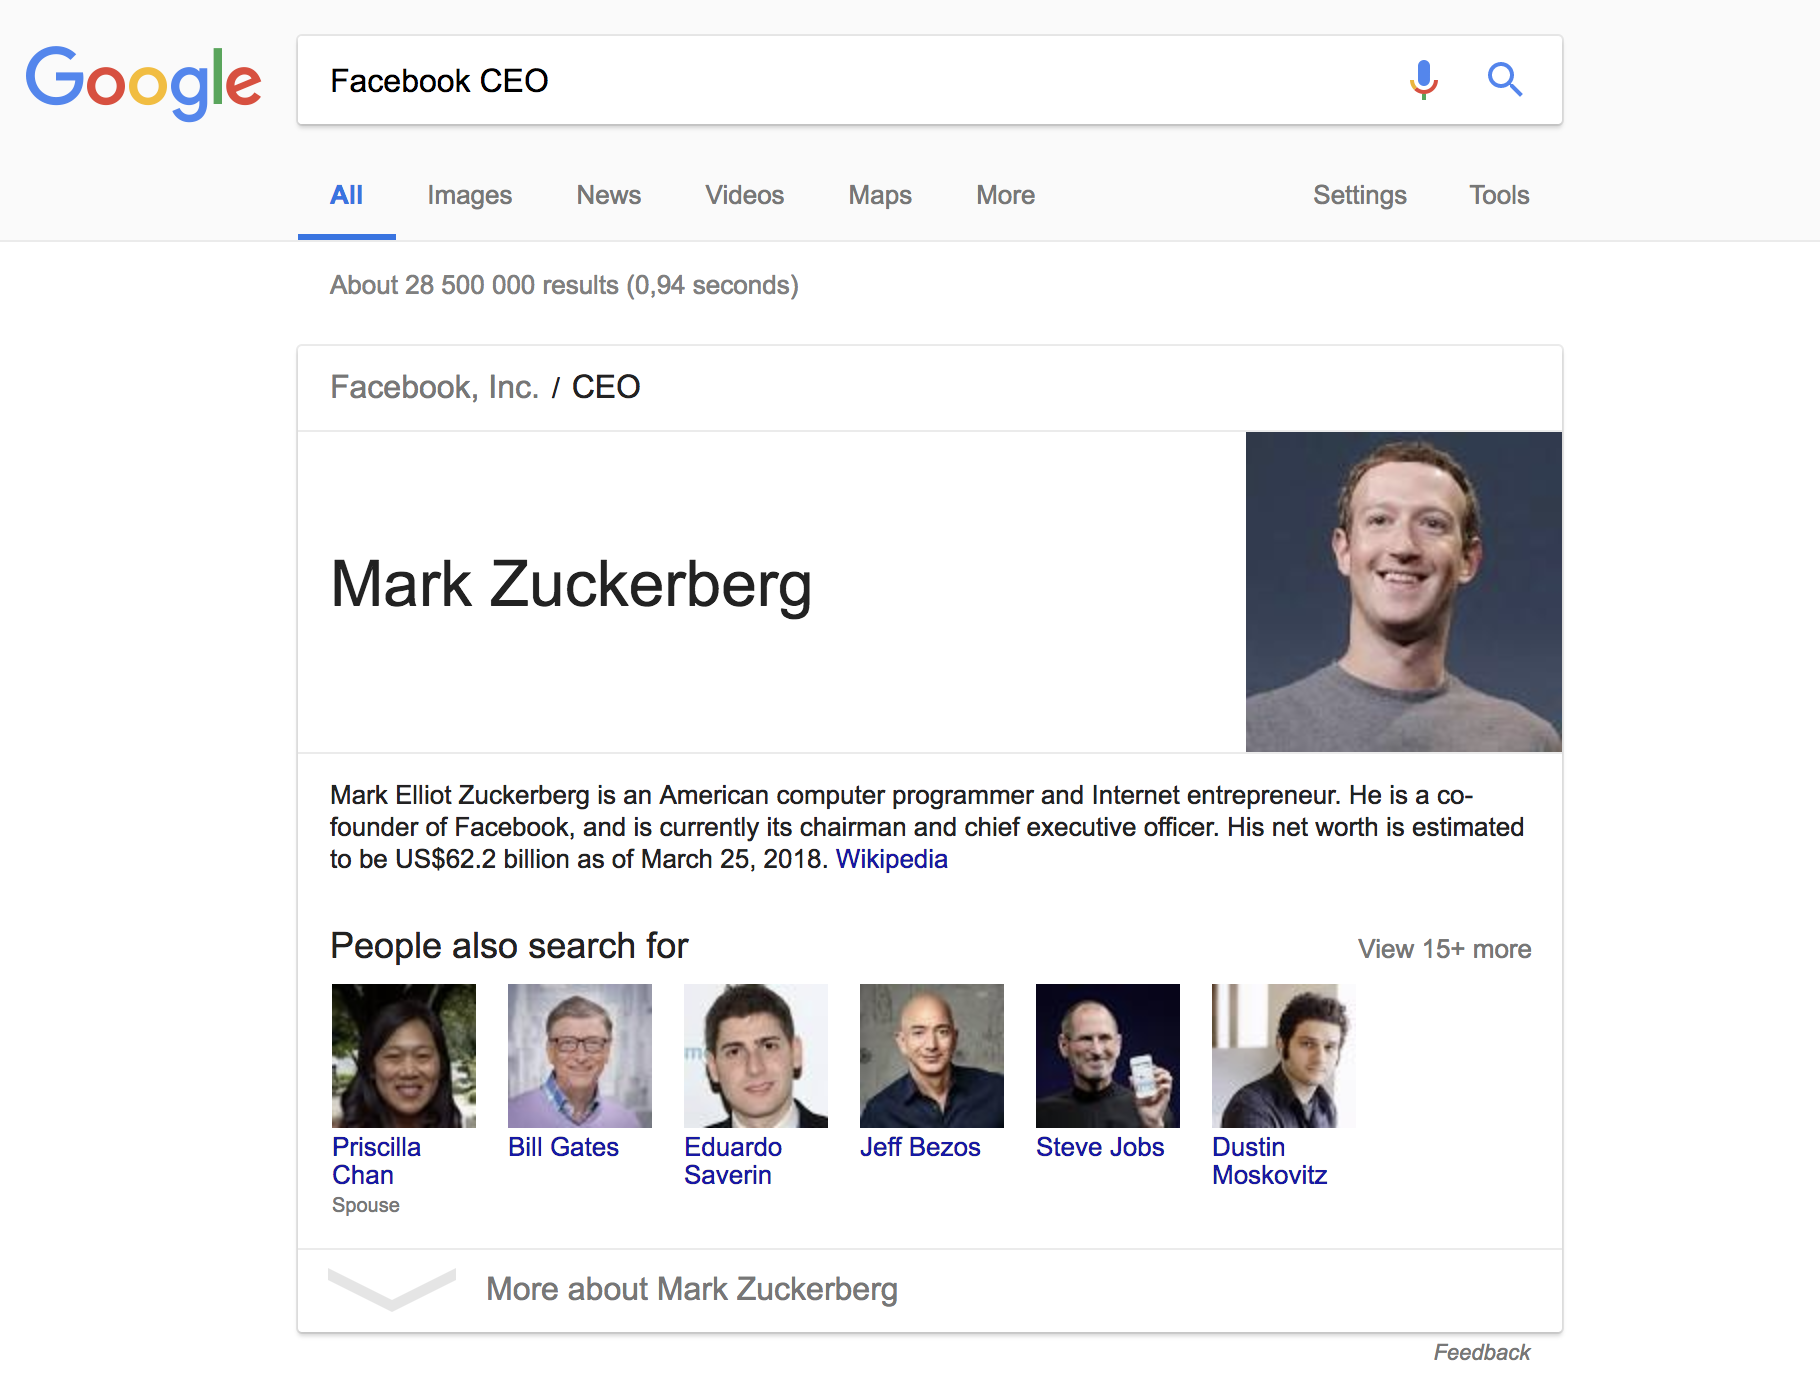 Marc-Zuckerburg-in-Google-related-search-entities